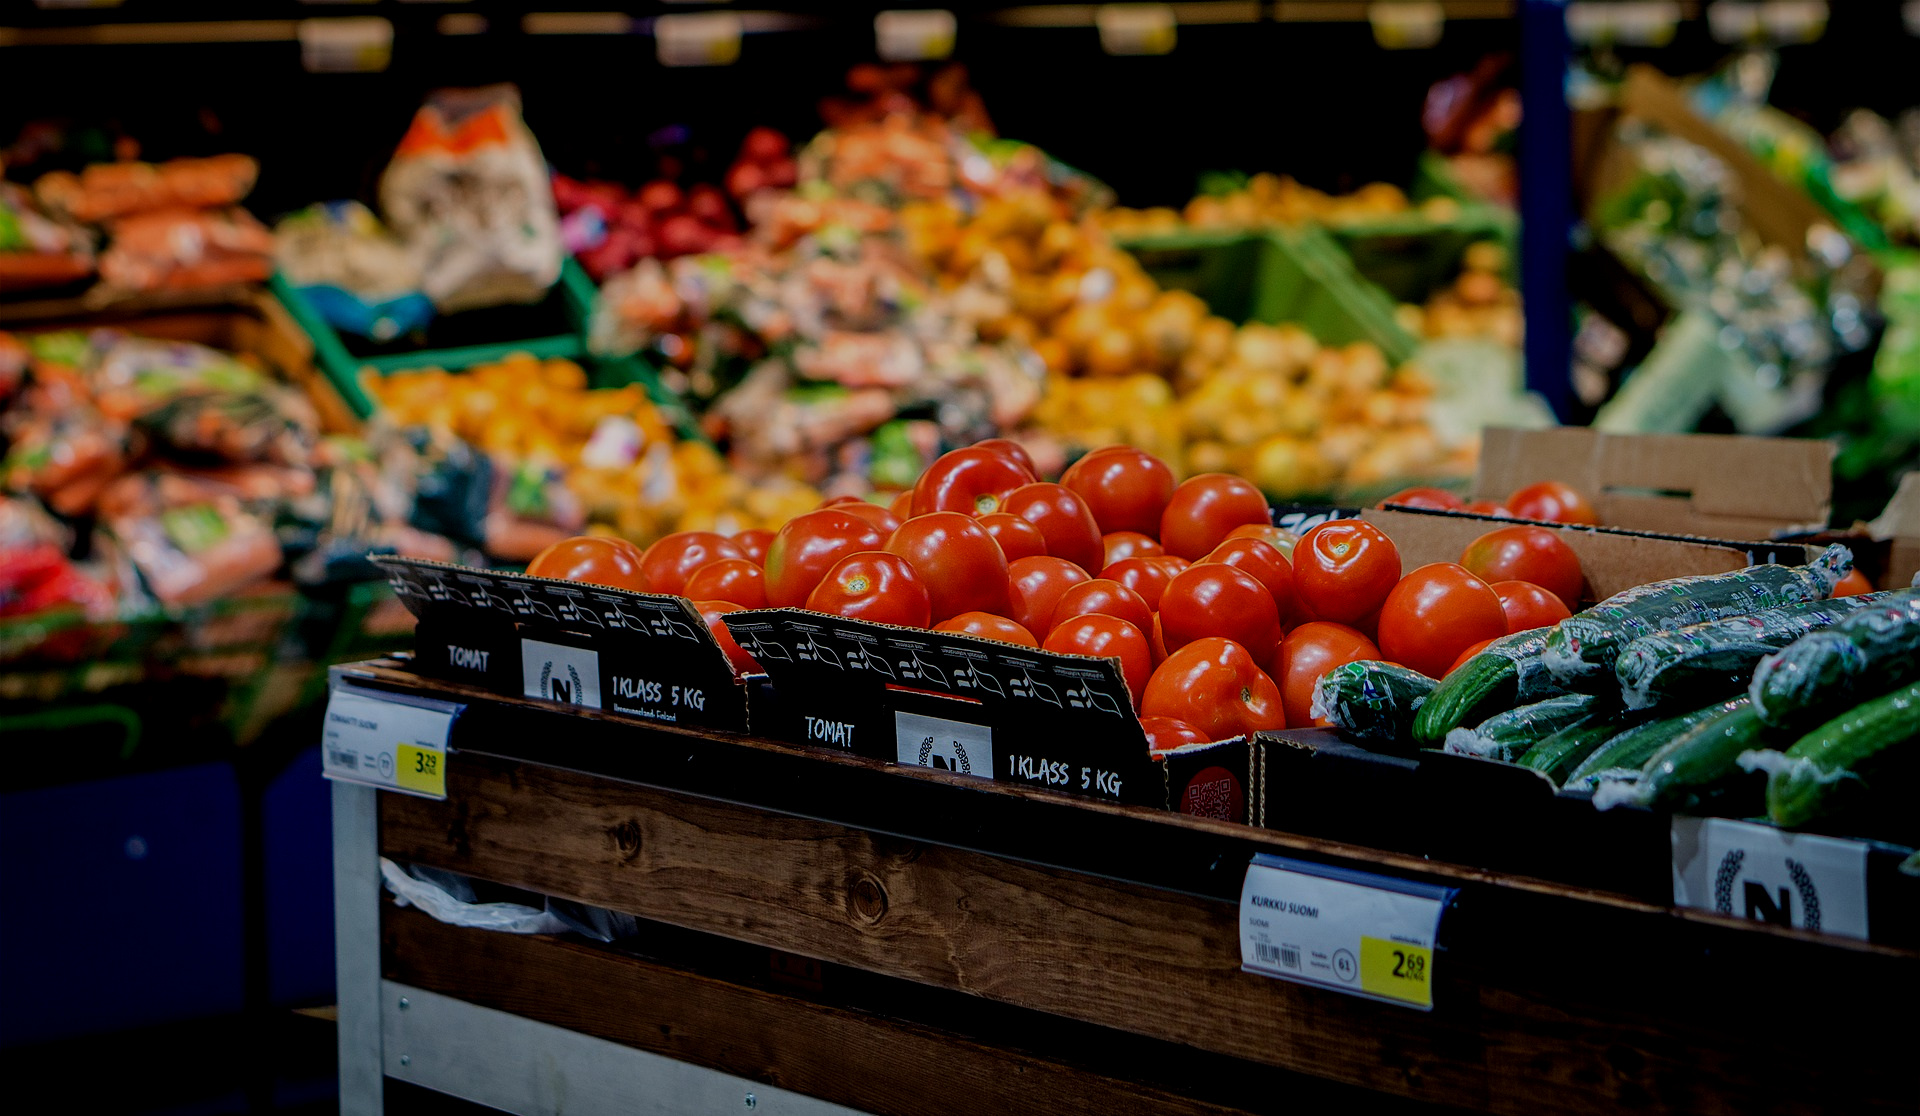 OUTLET - Retailers that buy direct from producers. The spreadsheet is organized into the follow categories: farmers market, farm stand, CSA, grocery store, and miscellaneous.